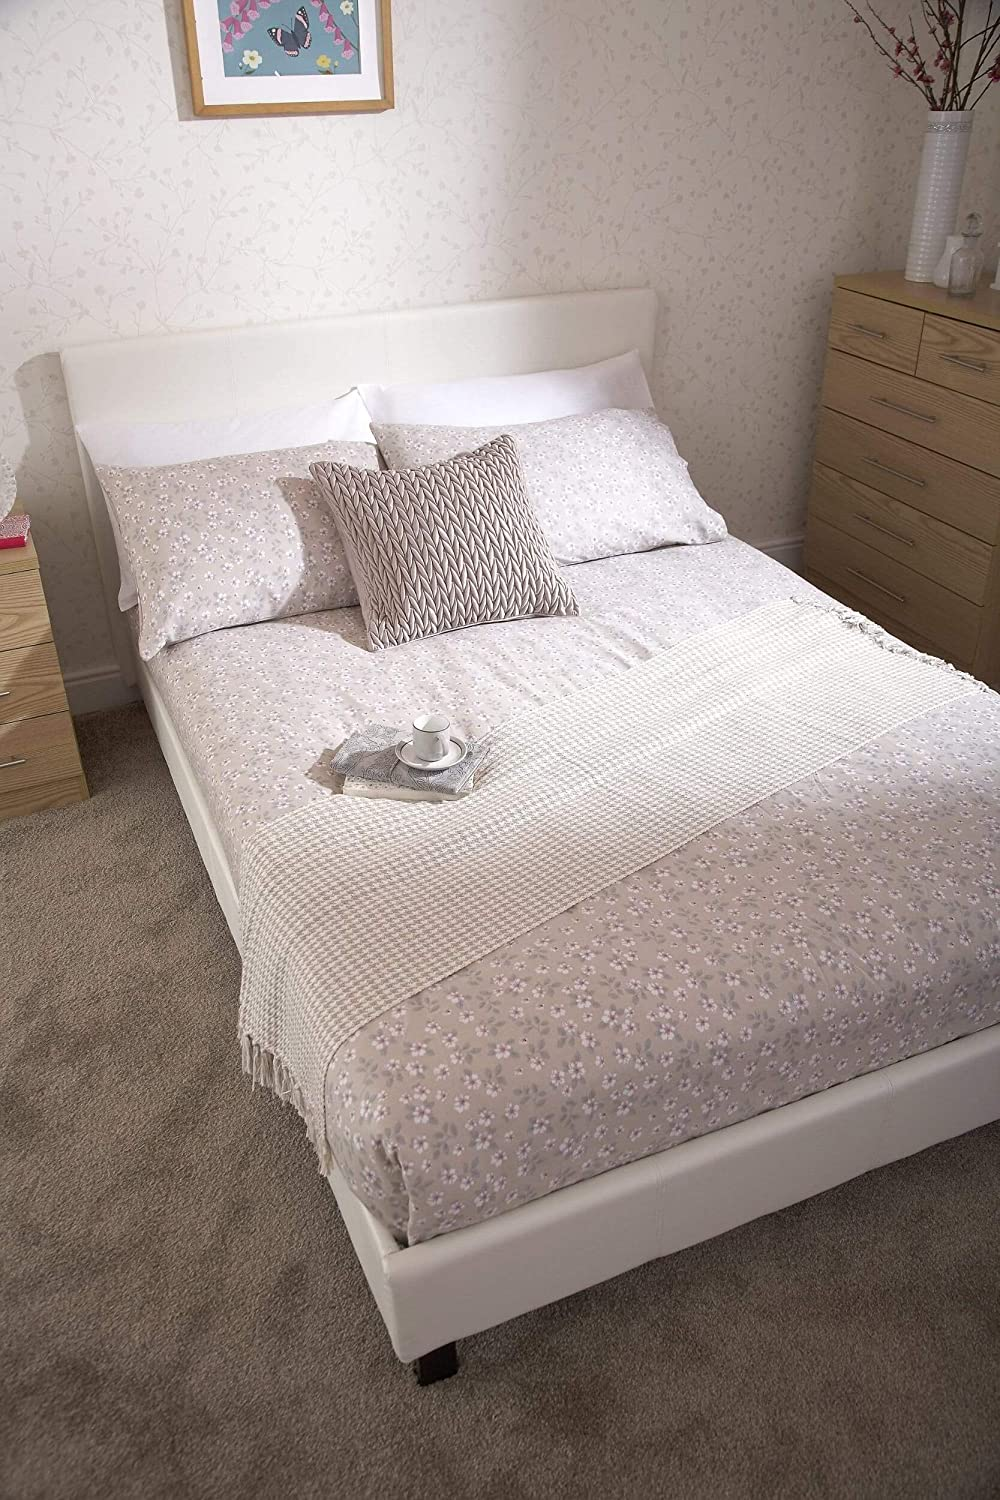 Right Deals UK Bed-In-A-Box 4ft Small Double Bed White Faux Leather